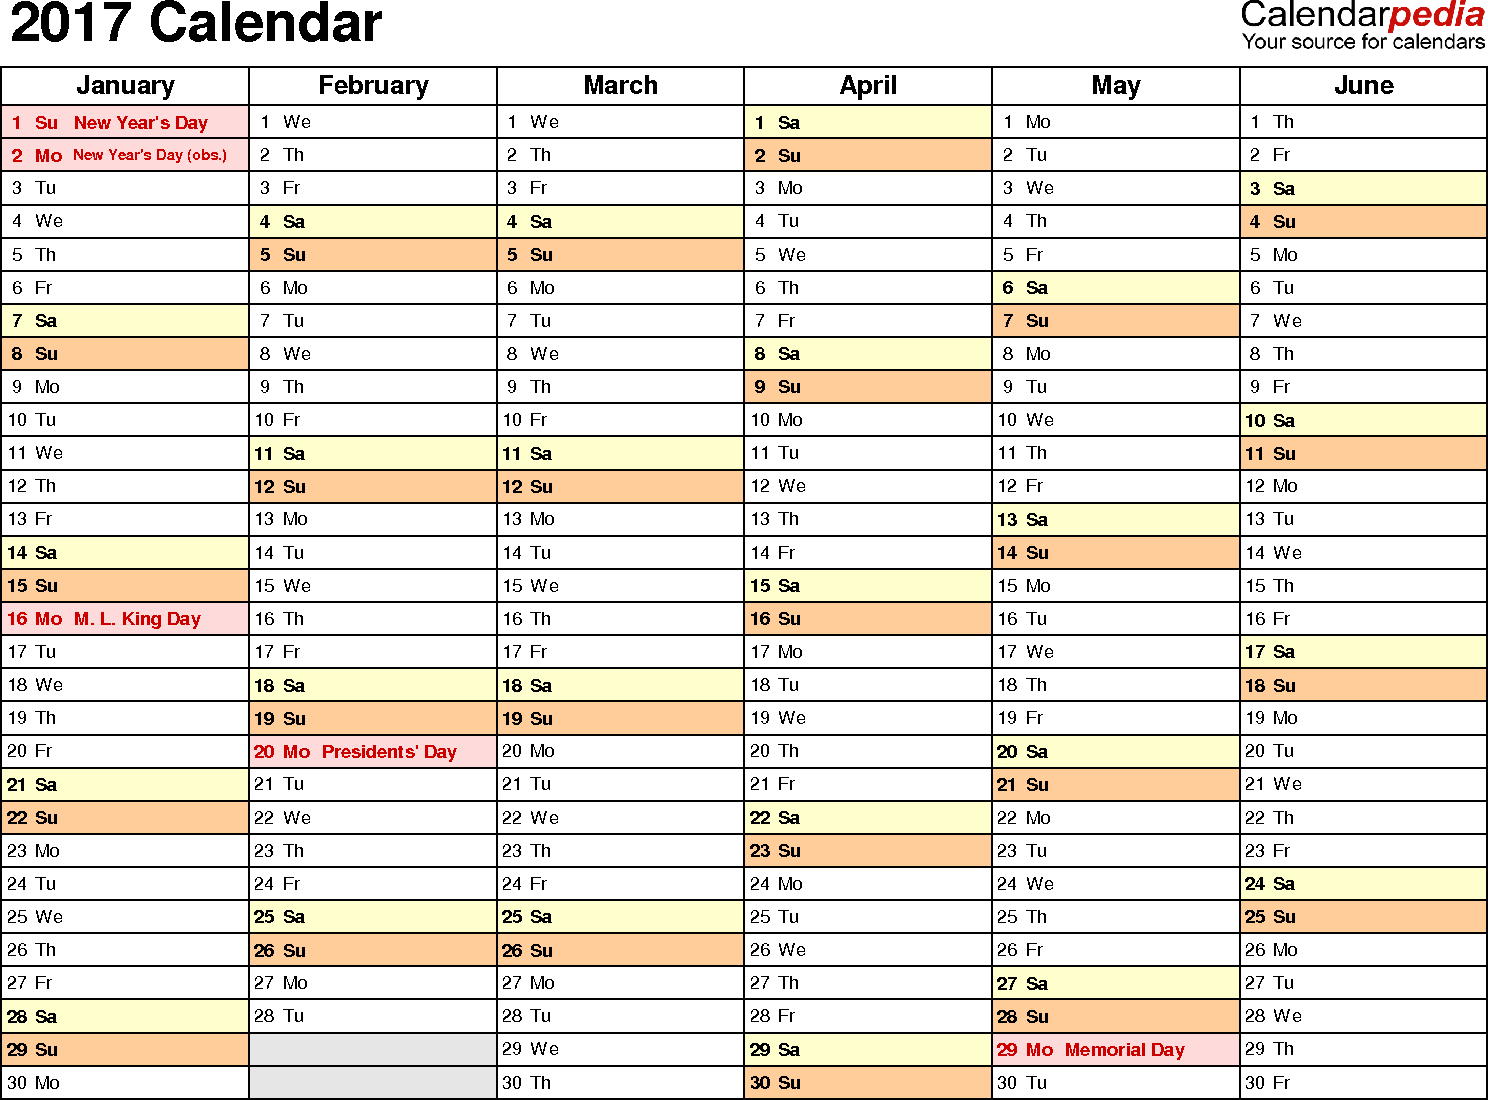 Ediblewildsus  Inspiring  Calendar  Download  Free Printable Excel Templates Xls With Handsome Template   Calendar For Excel Months Horizontally  Pages Landscape Orientation With Breathtaking Excel  Tutorials Also Using Excel For Scheduling In Addition Insert Macro In Excel And Construction Estimate Template Excel As Well As Add Filters In Excel Additionally Excel Sumifs Formula From Calendarpediacom With Ediblewildsus  Handsome  Calendar  Download  Free Printable Excel Templates Xls With Breathtaking Template   Calendar For Excel Months Horizontally  Pages Landscape Orientation And Inspiring Excel  Tutorials Also Using Excel For Scheduling In Addition Insert Macro In Excel From Calendarpediacom